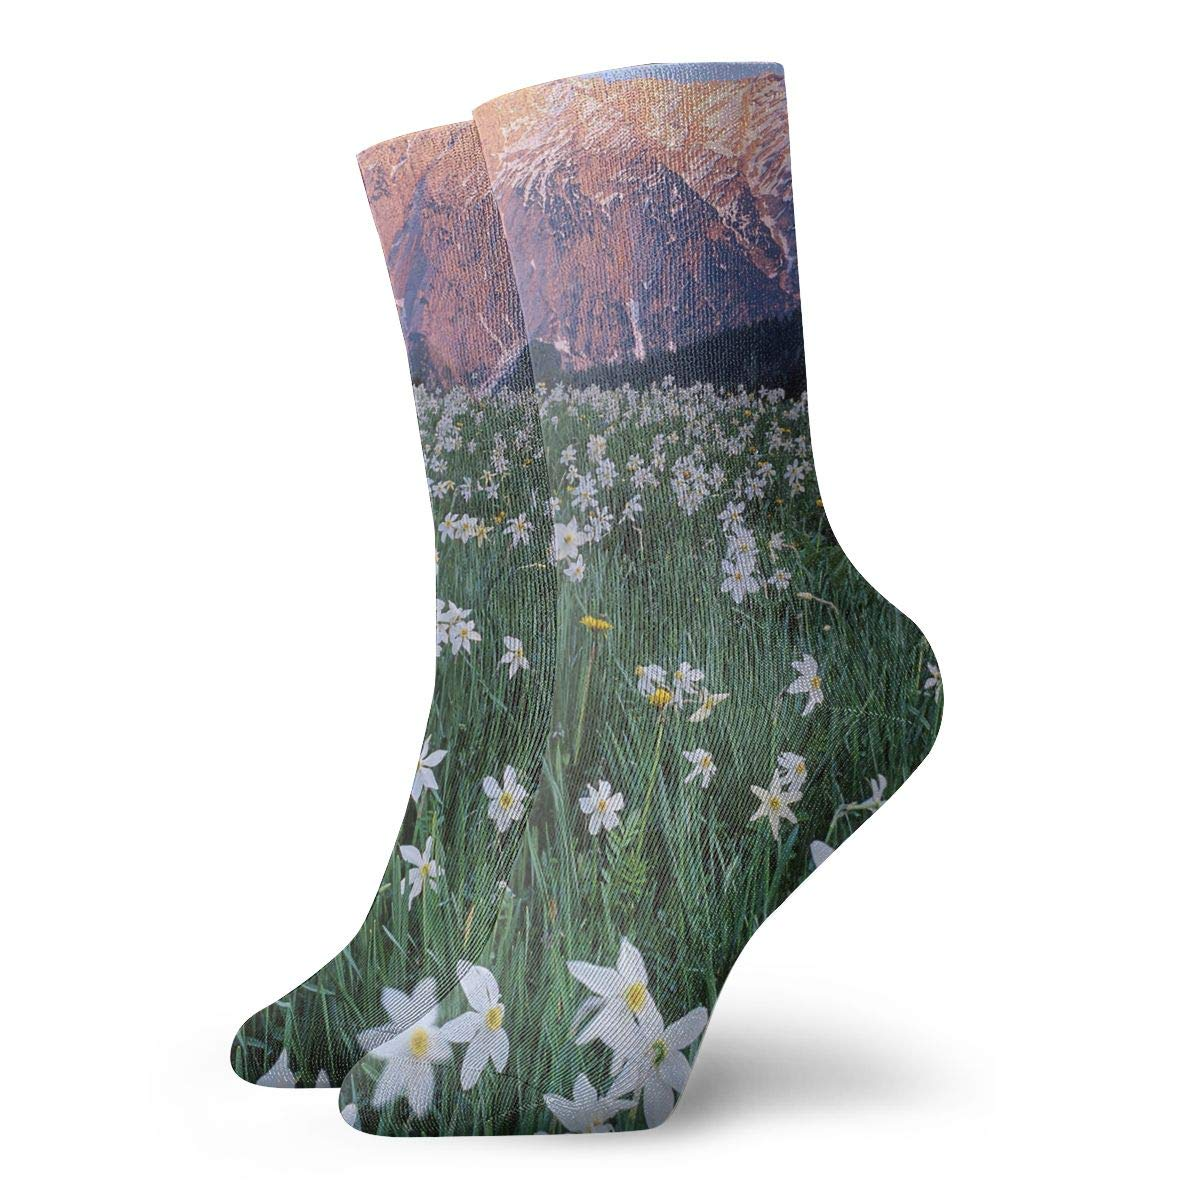 WEEDKEYCAT White Flowers Grass Field Adult Short Socks Cotton Funny Socks for Mens Womens Yoga Hiking Cycling Running Soccer Sports